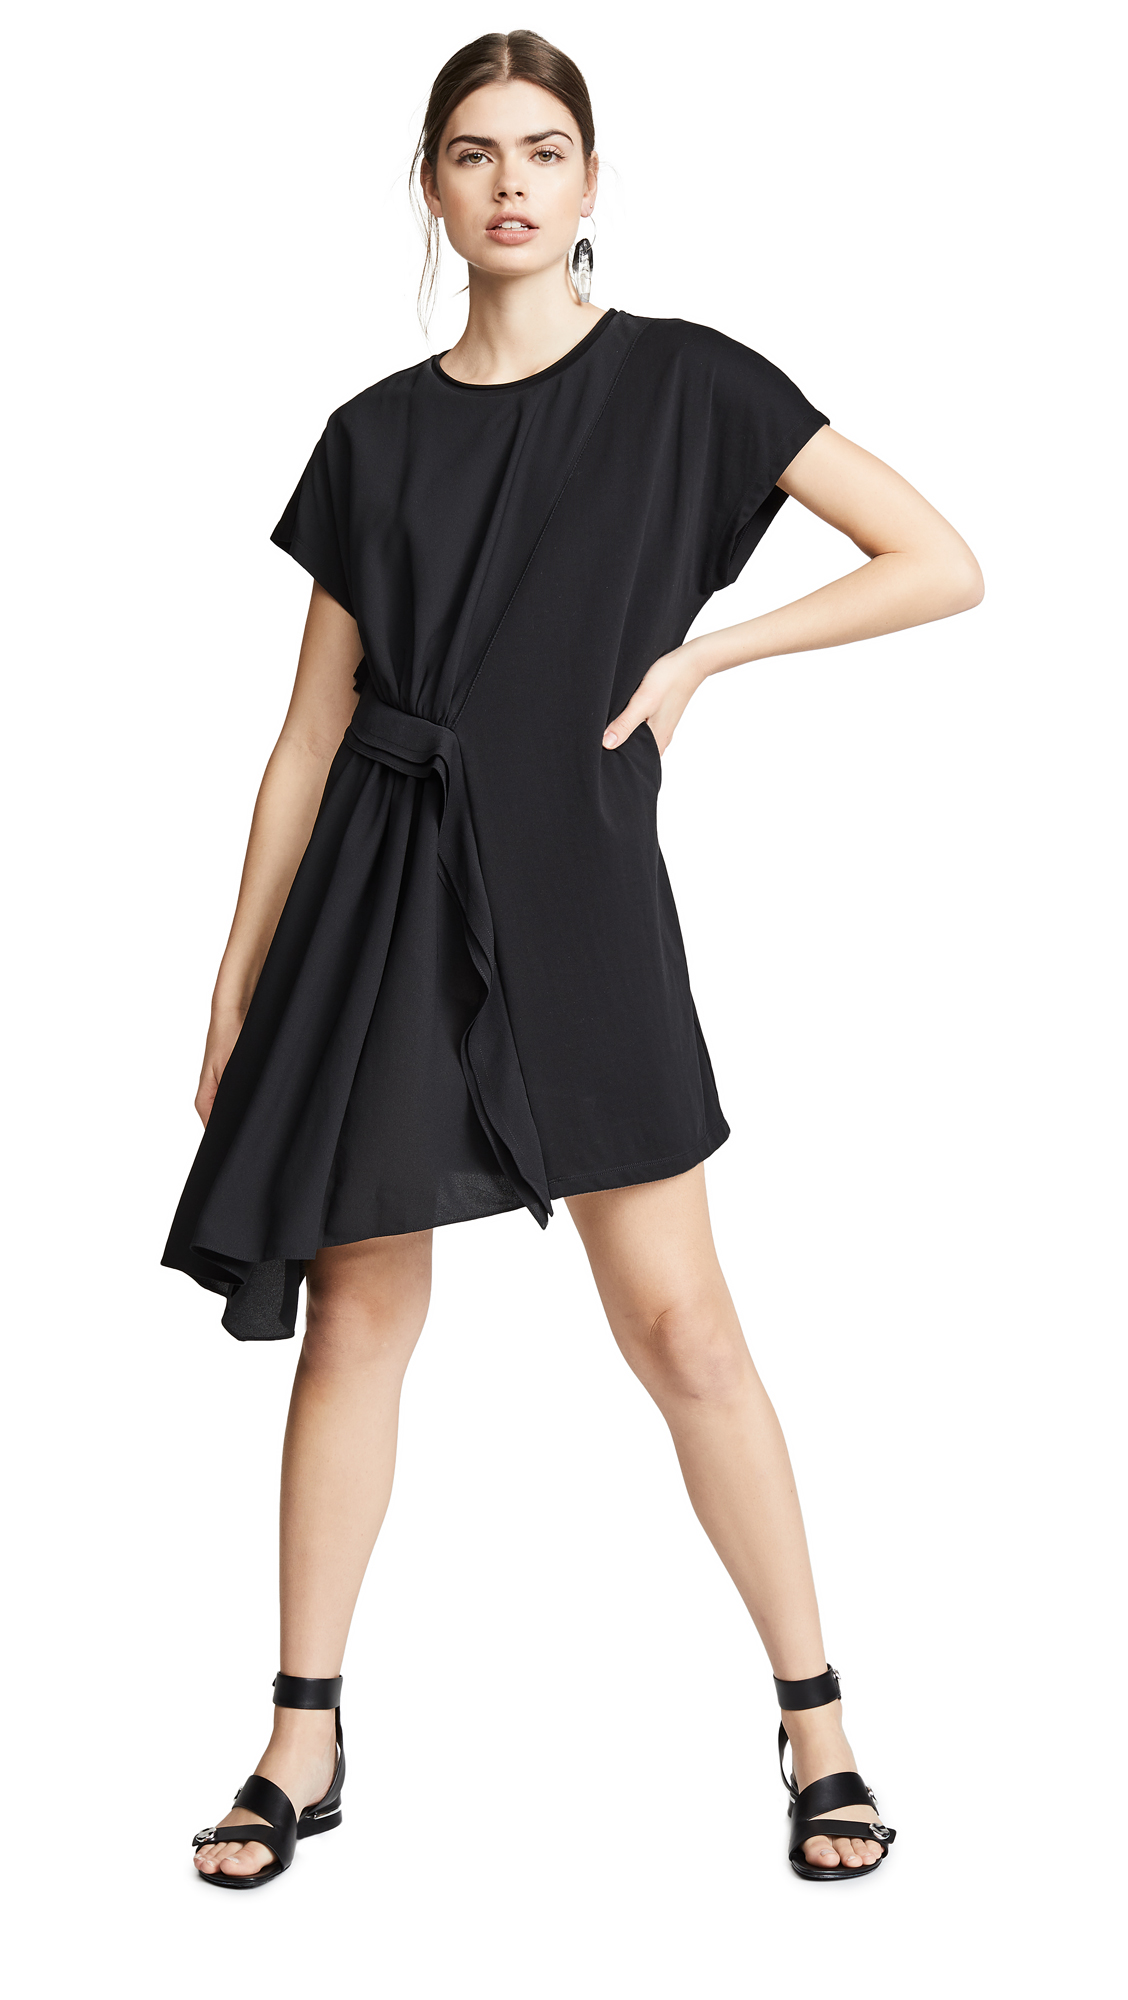 3.1 Phillip Lim Ruffle Tee Dress - Black